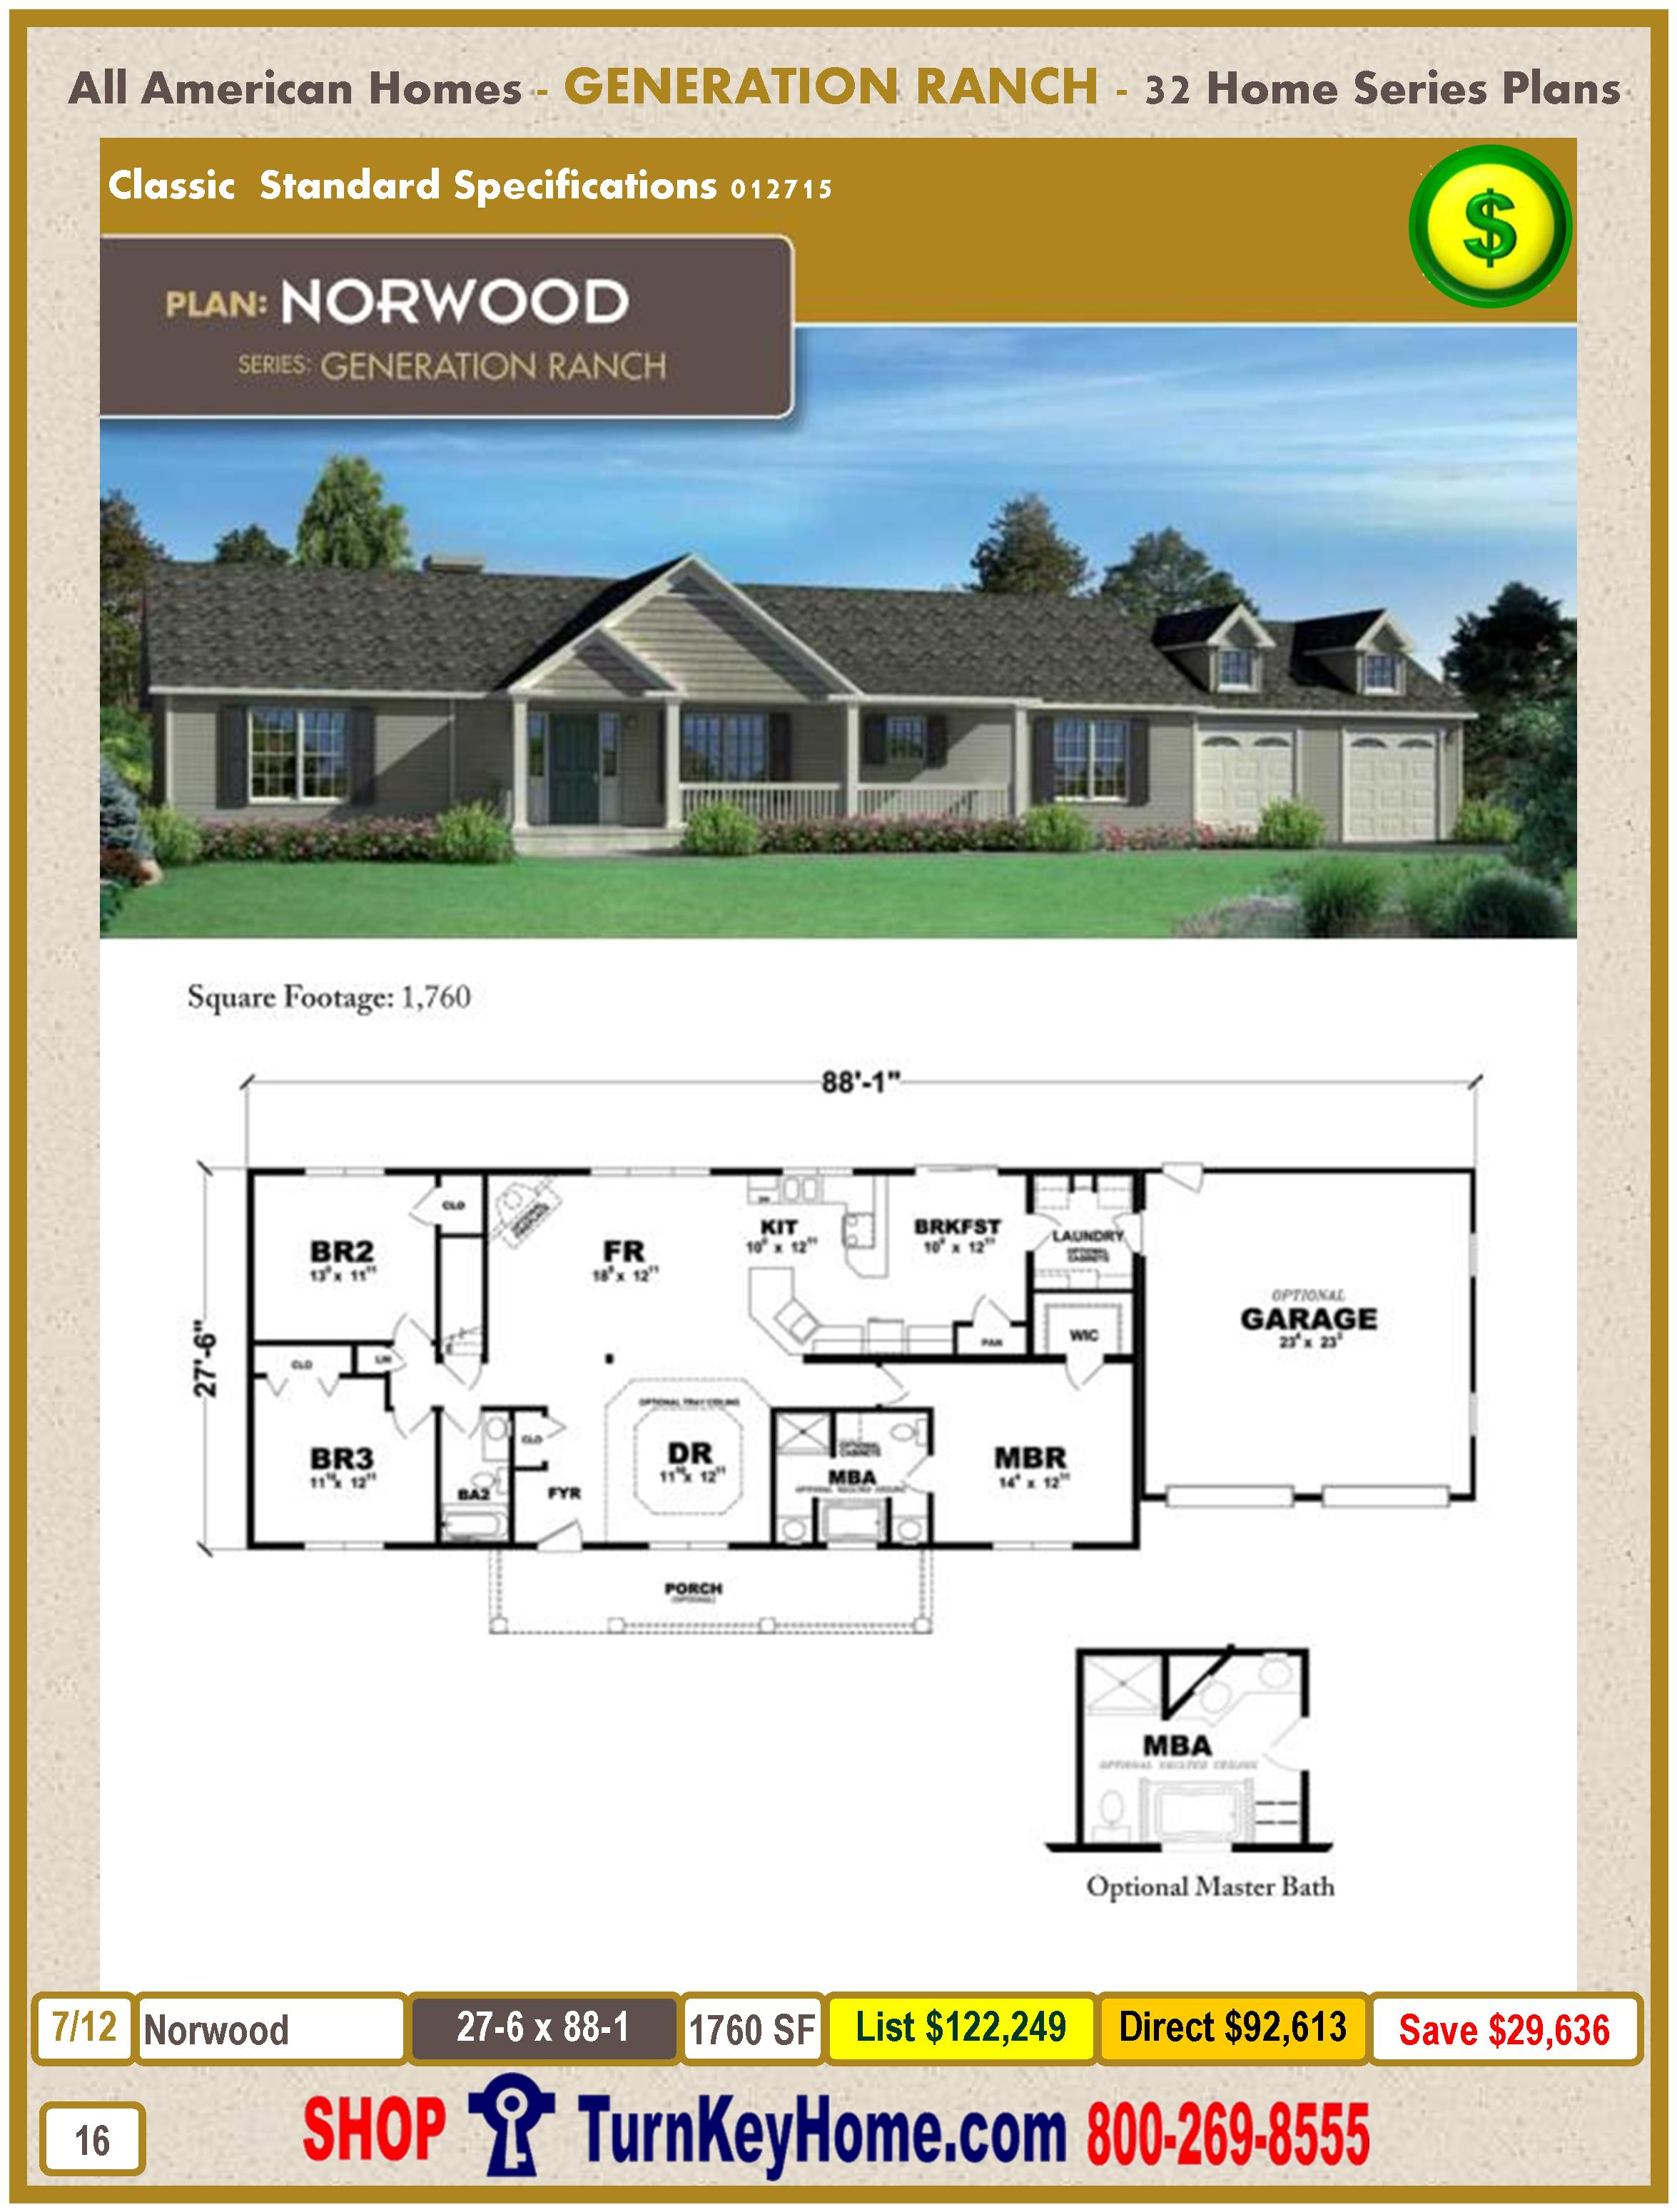 Modular.All.American.Homes.Generation.Ranch.Home.Series.Catalog.Page.16.Norwood.Direct.Price.021415